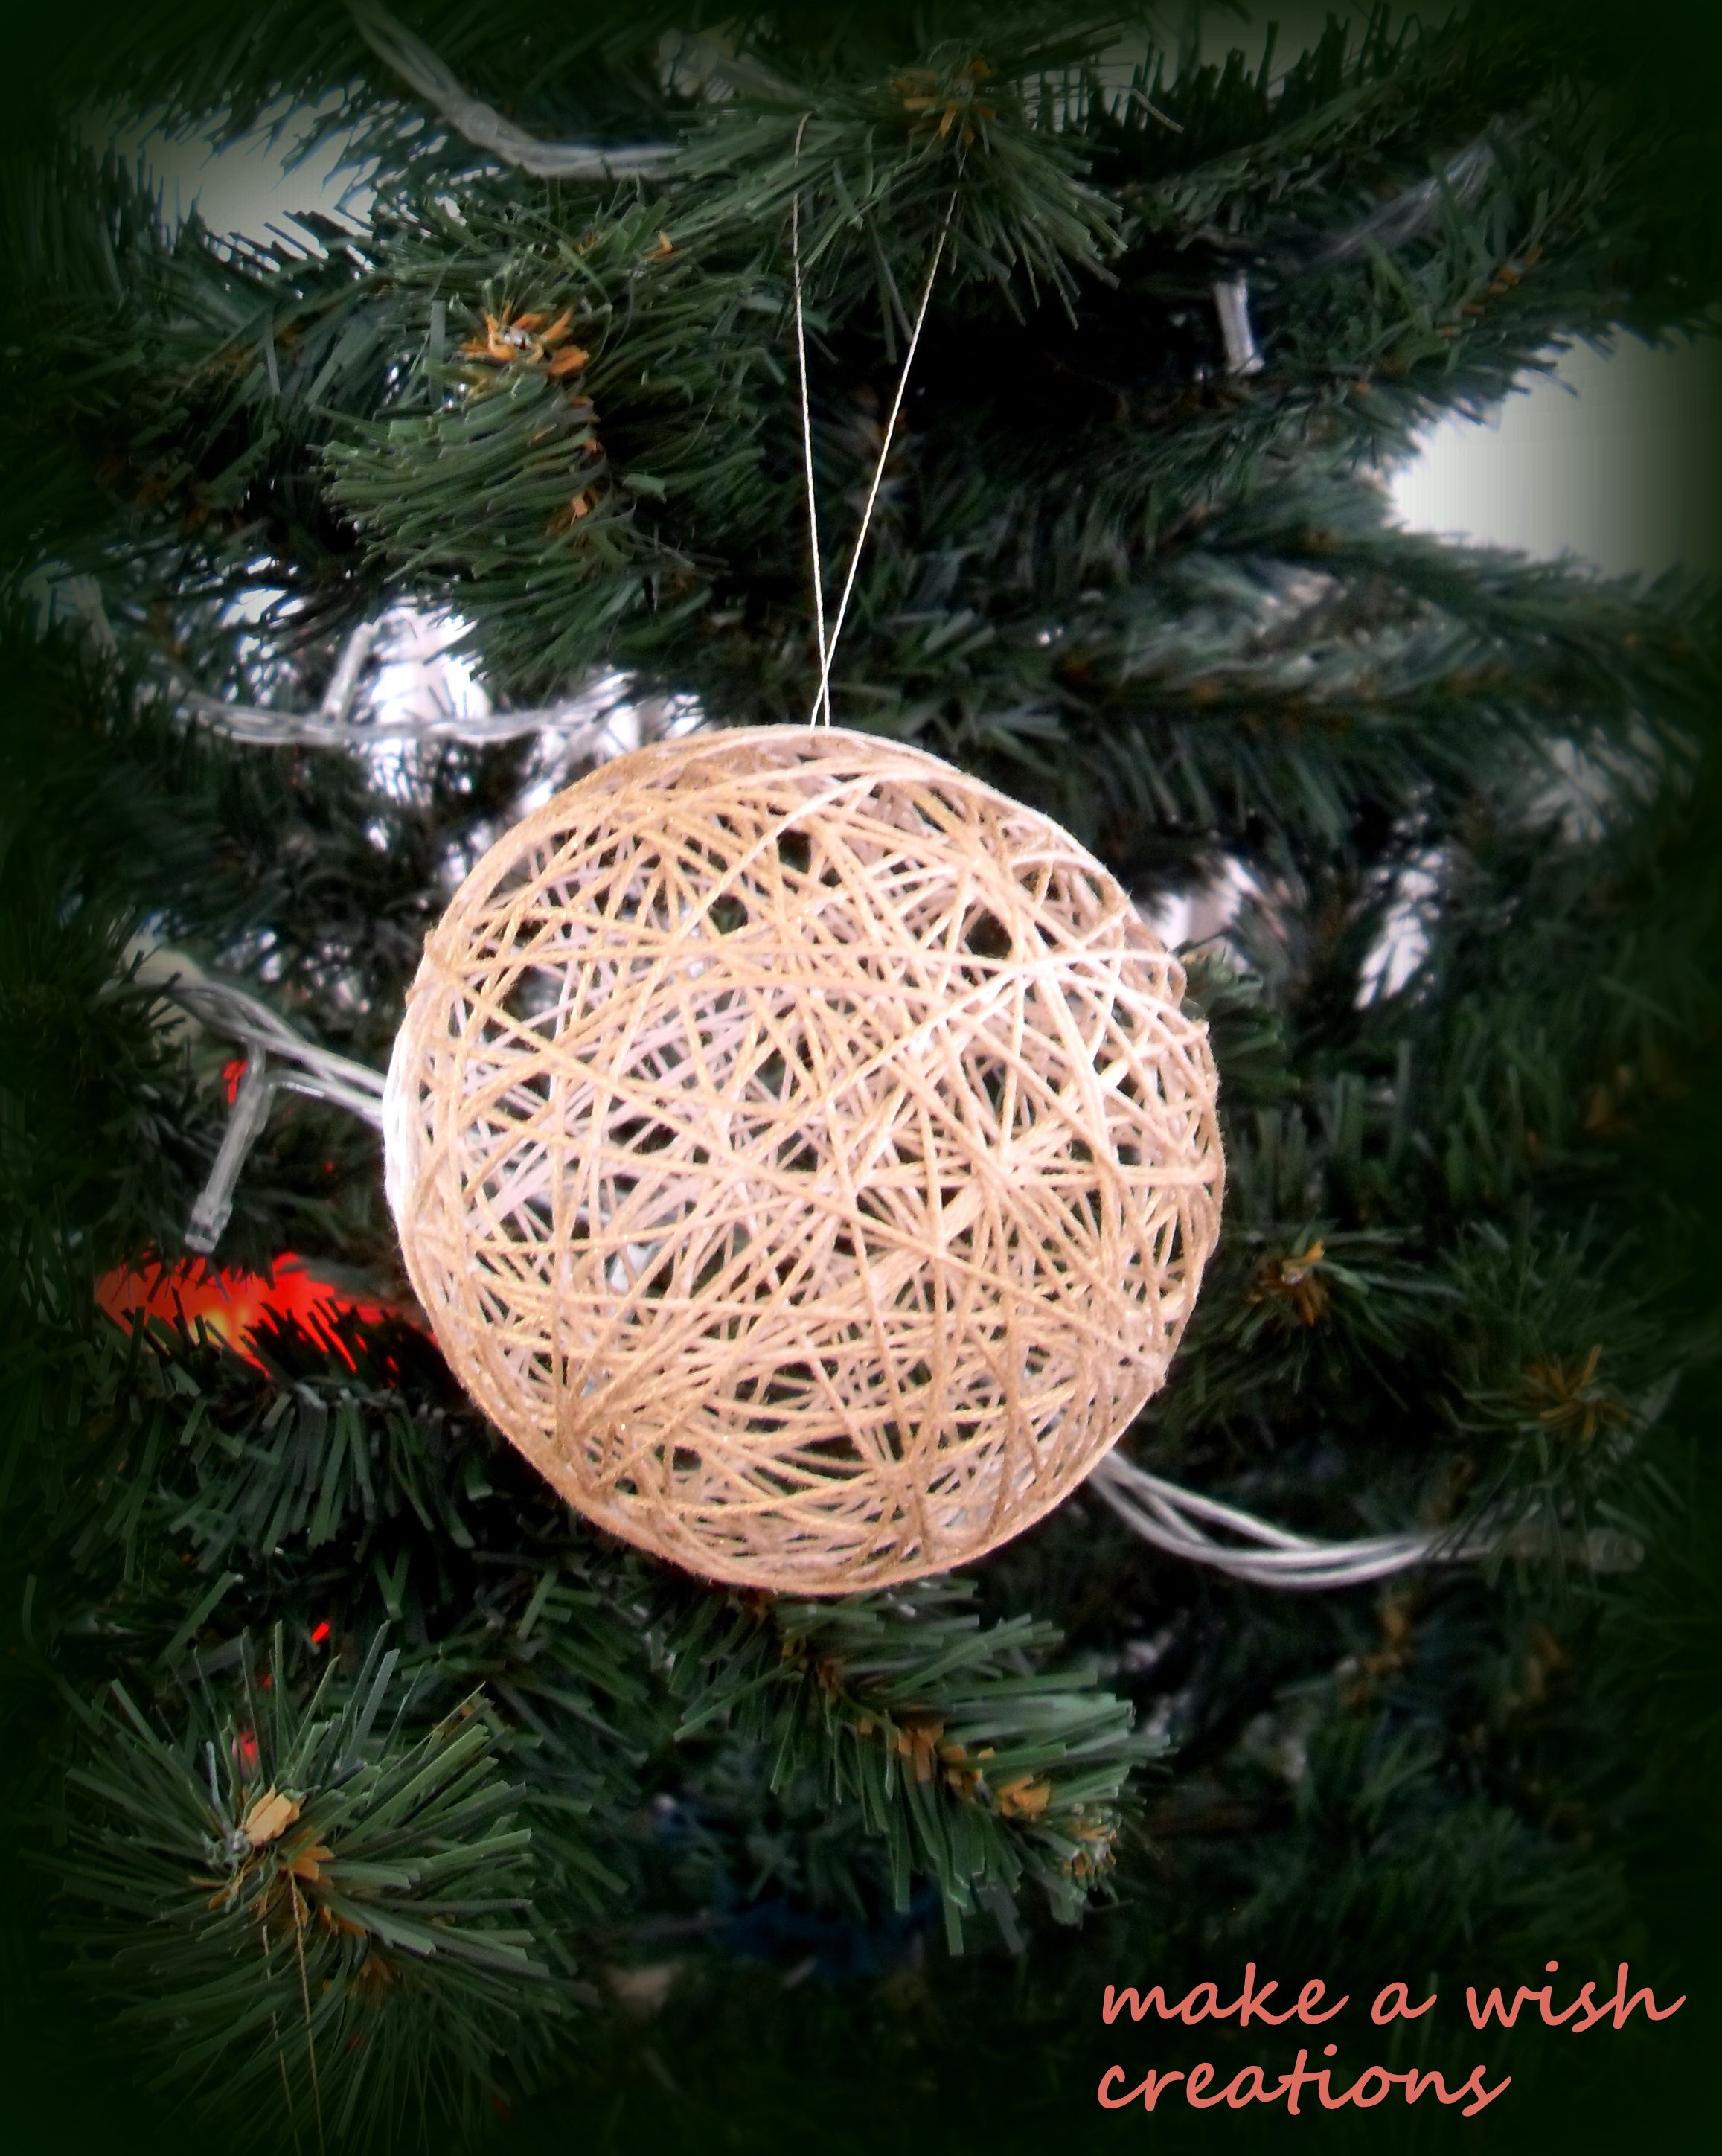 #Christmasballs  https://www.facebook.com/pages/Make-a-wish-creations/1544953072386693